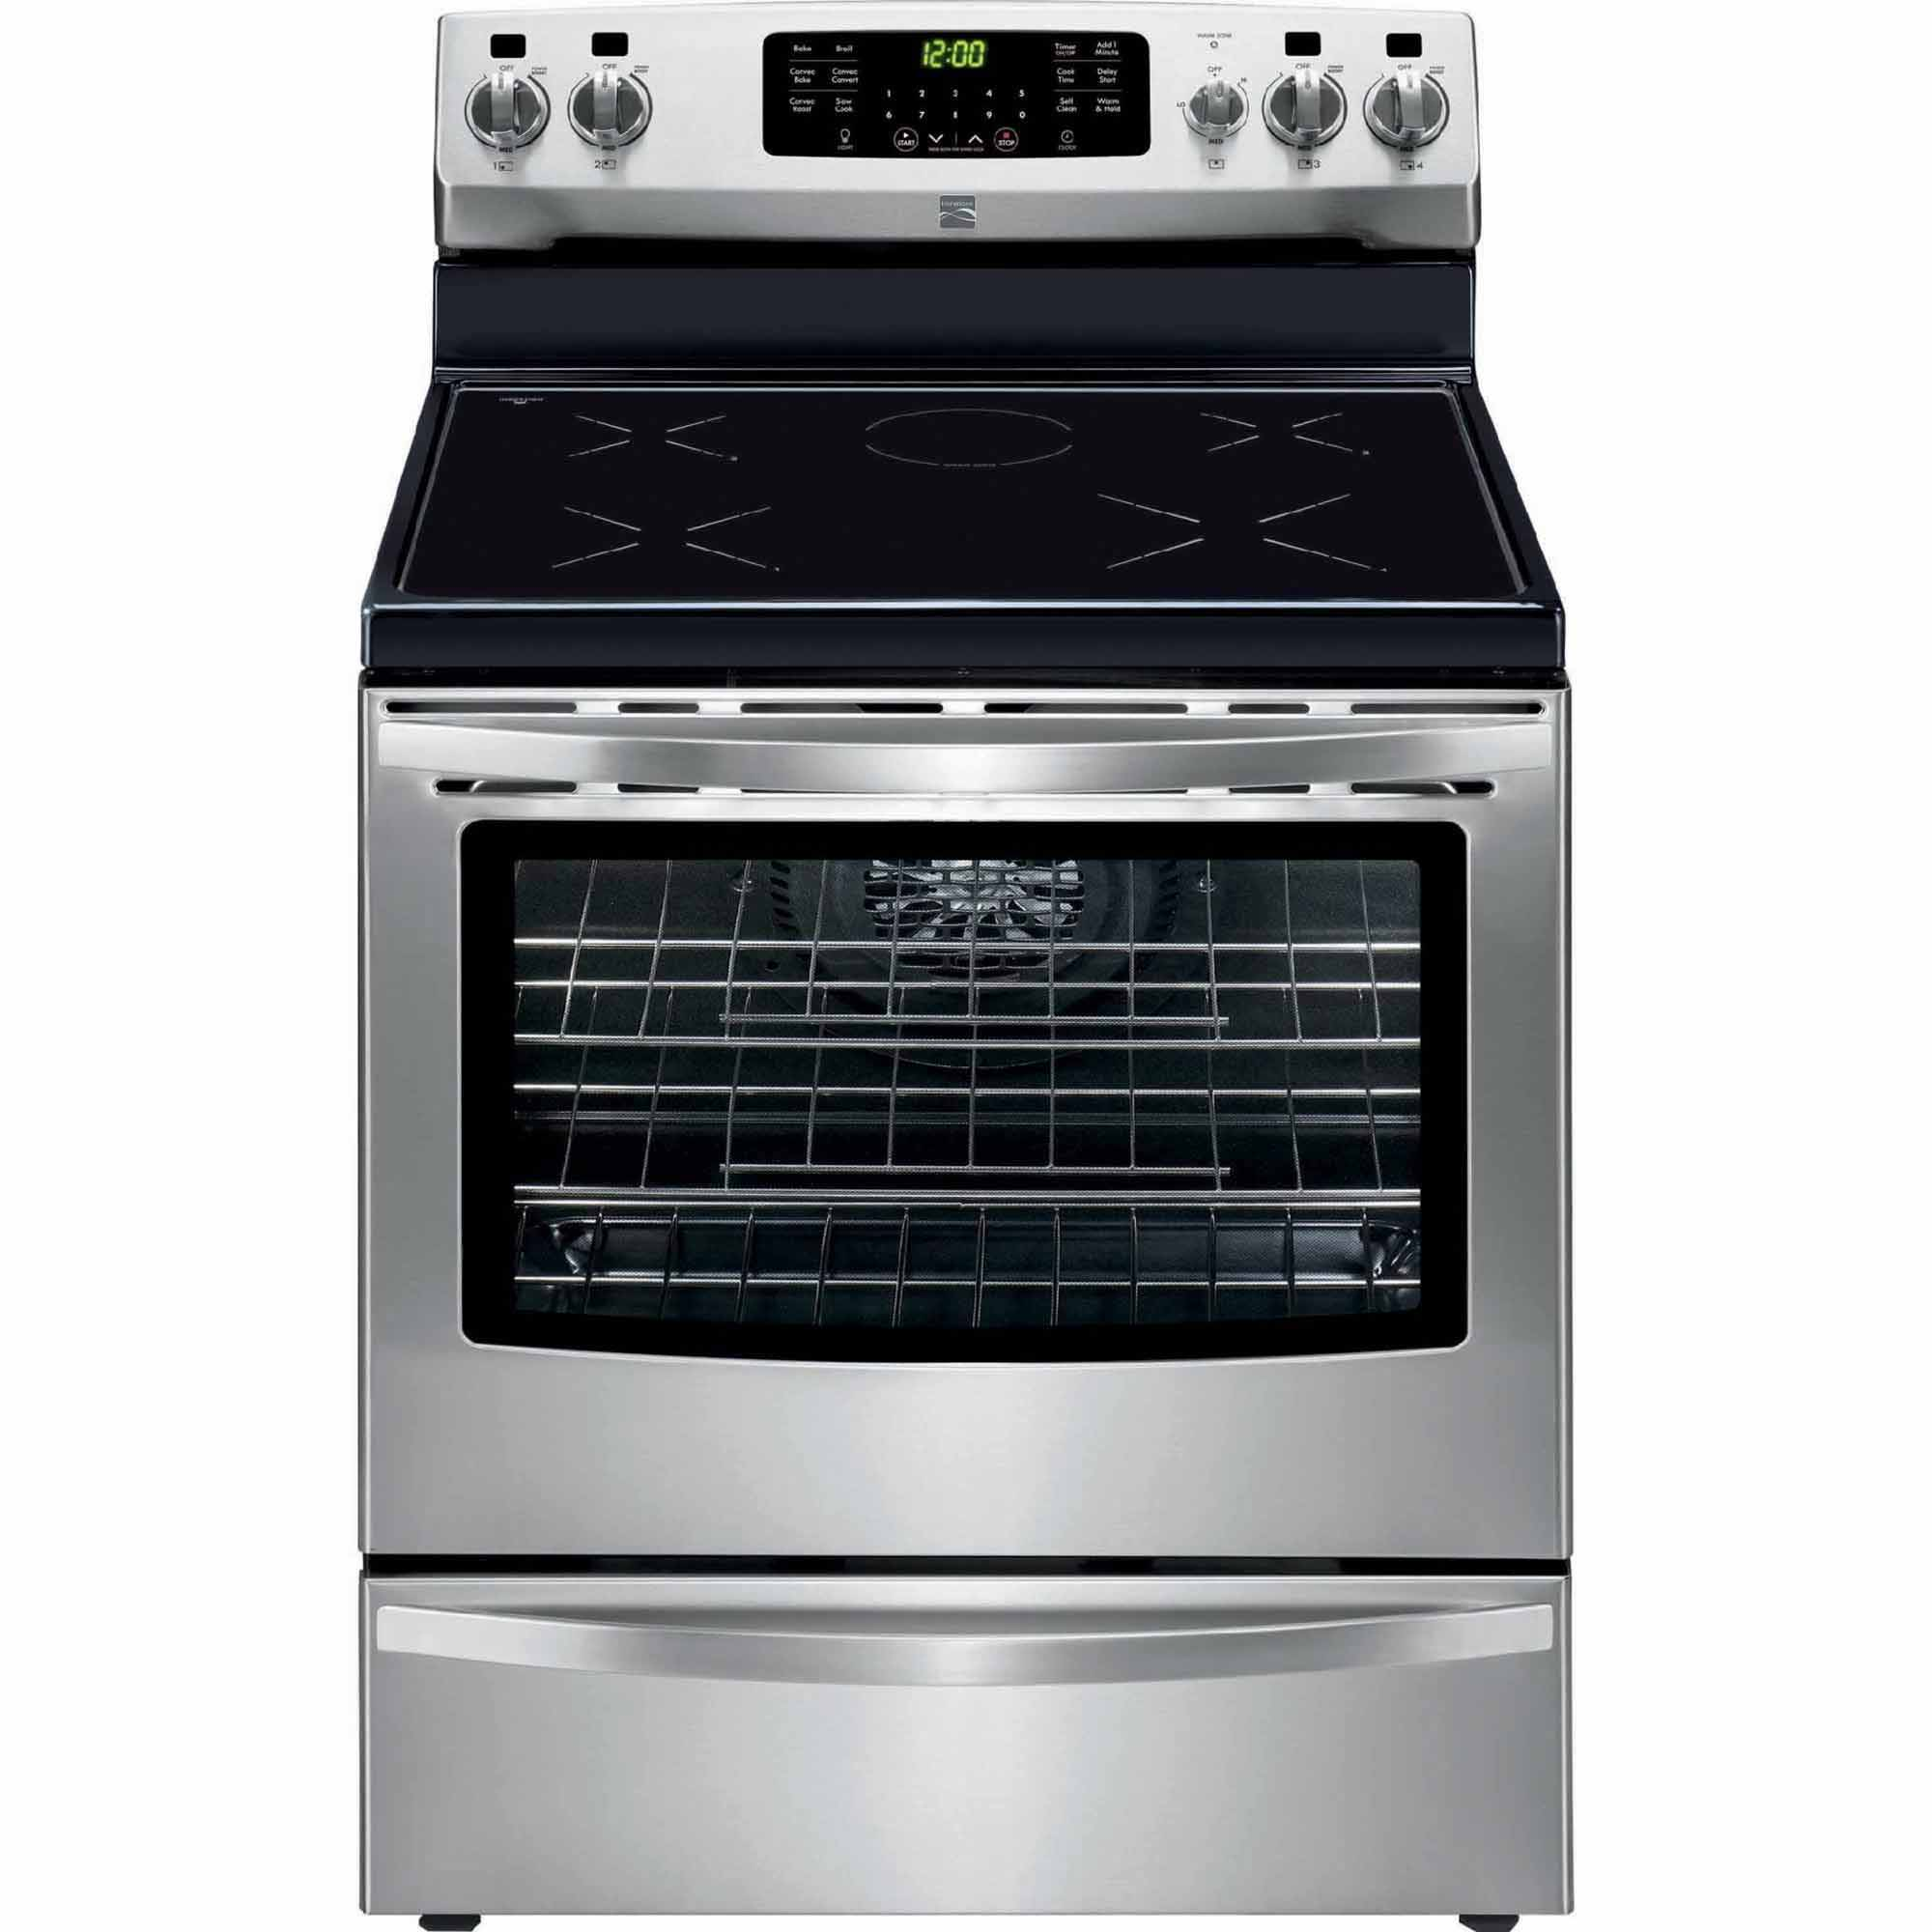 Kenmore 5.4 cu. ft. Freestanding Induction Range w/ True Convection - Stainless Steel